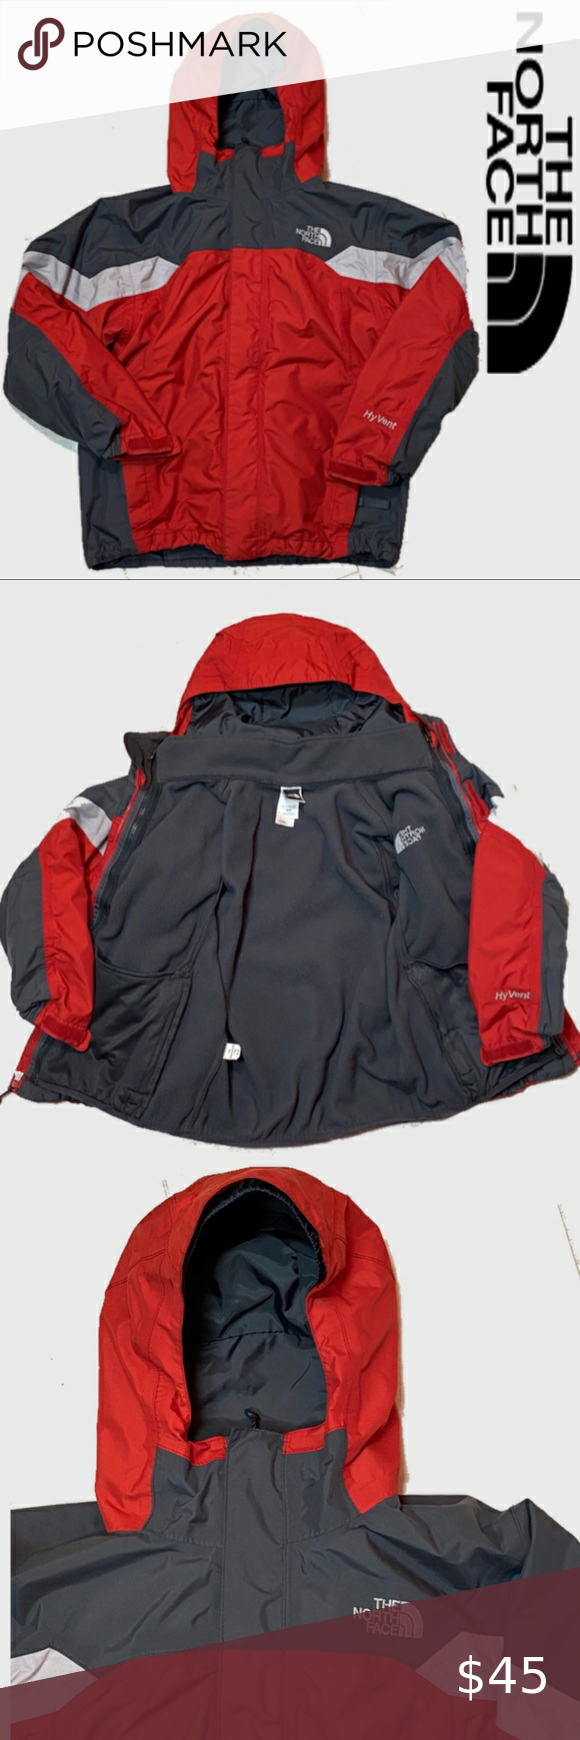 The North Face Hyvent Boys 2 In 1 Rain Jacket North Face Hyvent North Face Jacket Rain Jacket [ 1740 x 580 Pixel ]